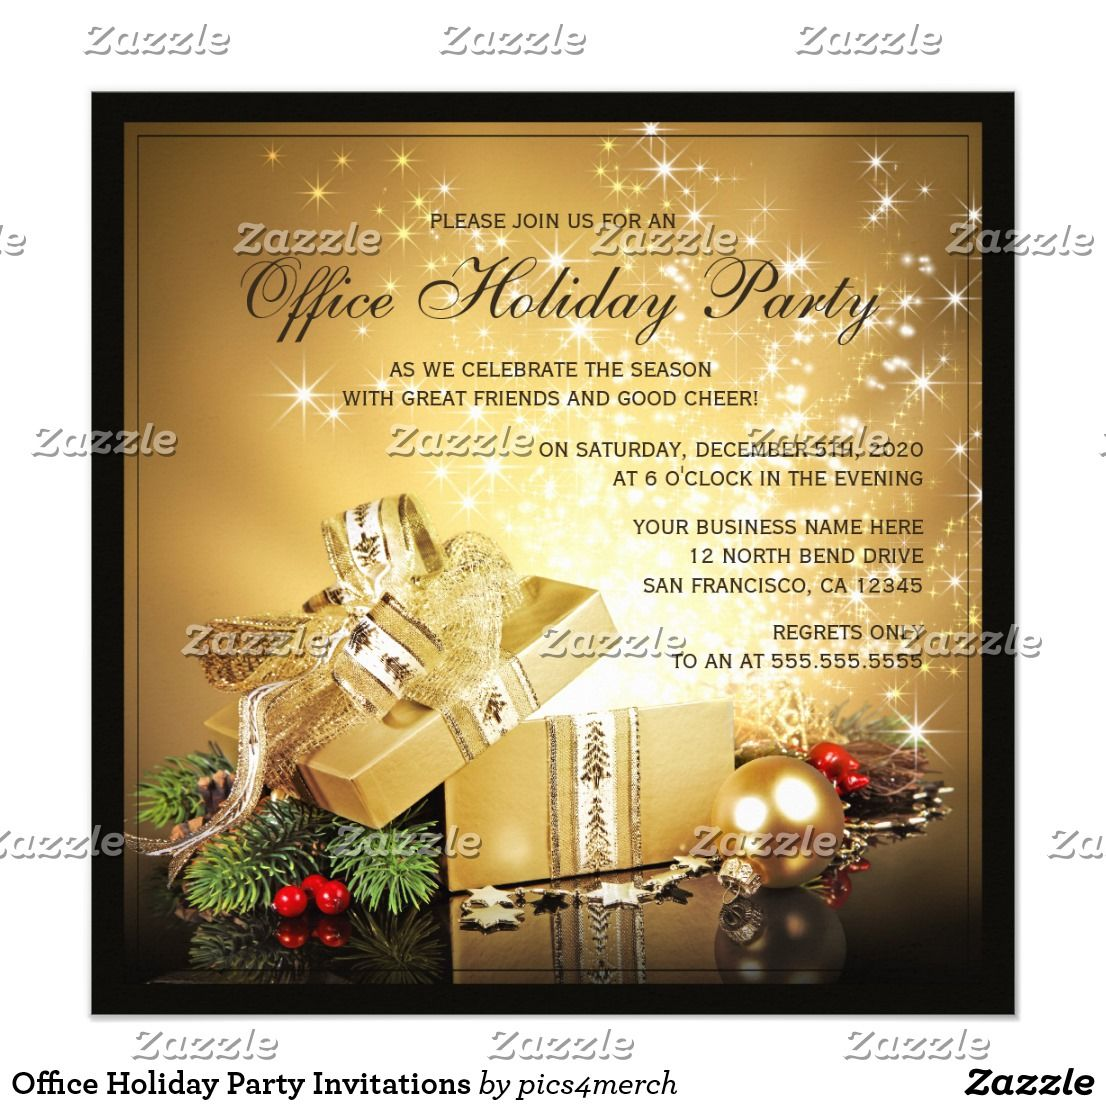 Office Holiday Party Invitations | Pinterest | Party invitation ...